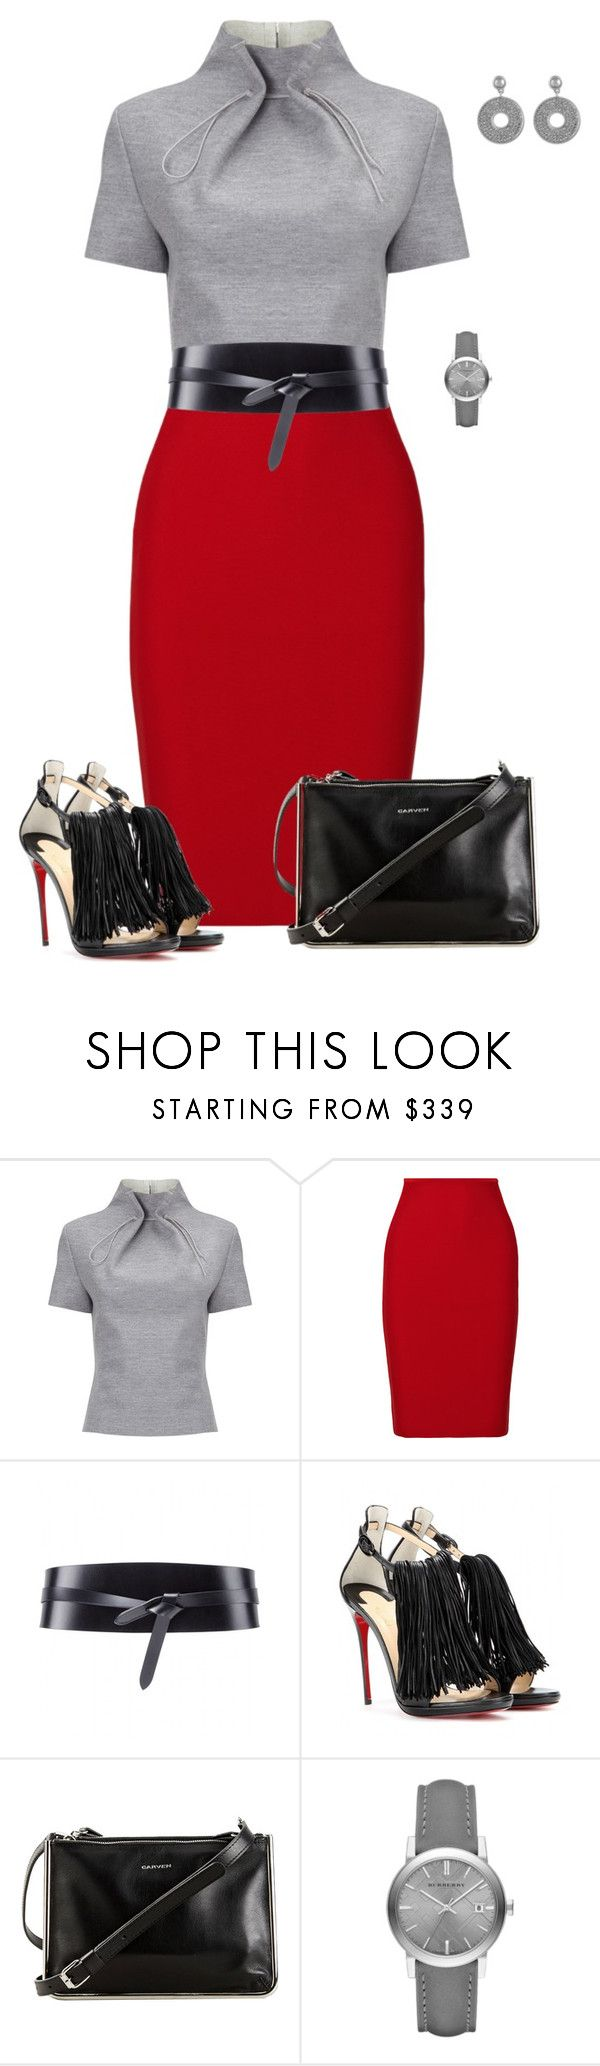 """Untitled #603"" by angela-vitello on Polyvore featuring J. JS Lee, Roland Mouret, Isabel Marant, Christian Louboutin, Carven, Burberry and Karen Kane"